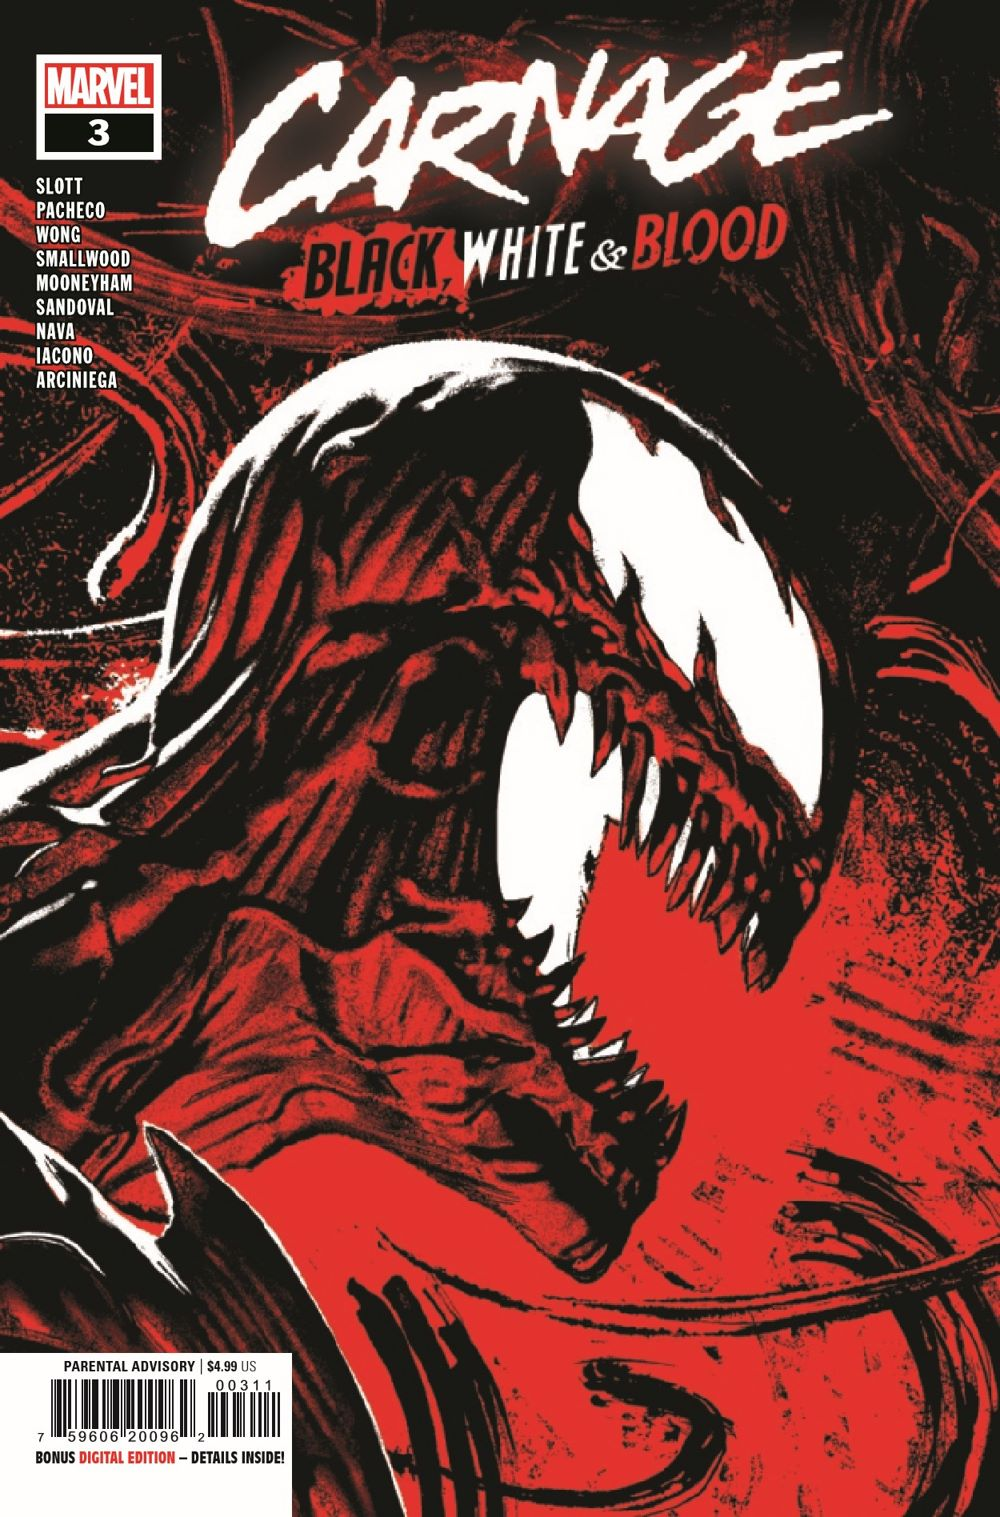 CARNBLKWHBL2021003_Preview-1 ComicList Previews: CARNAGE BLACK WHITE AND BLOOD #3 (OF 4)